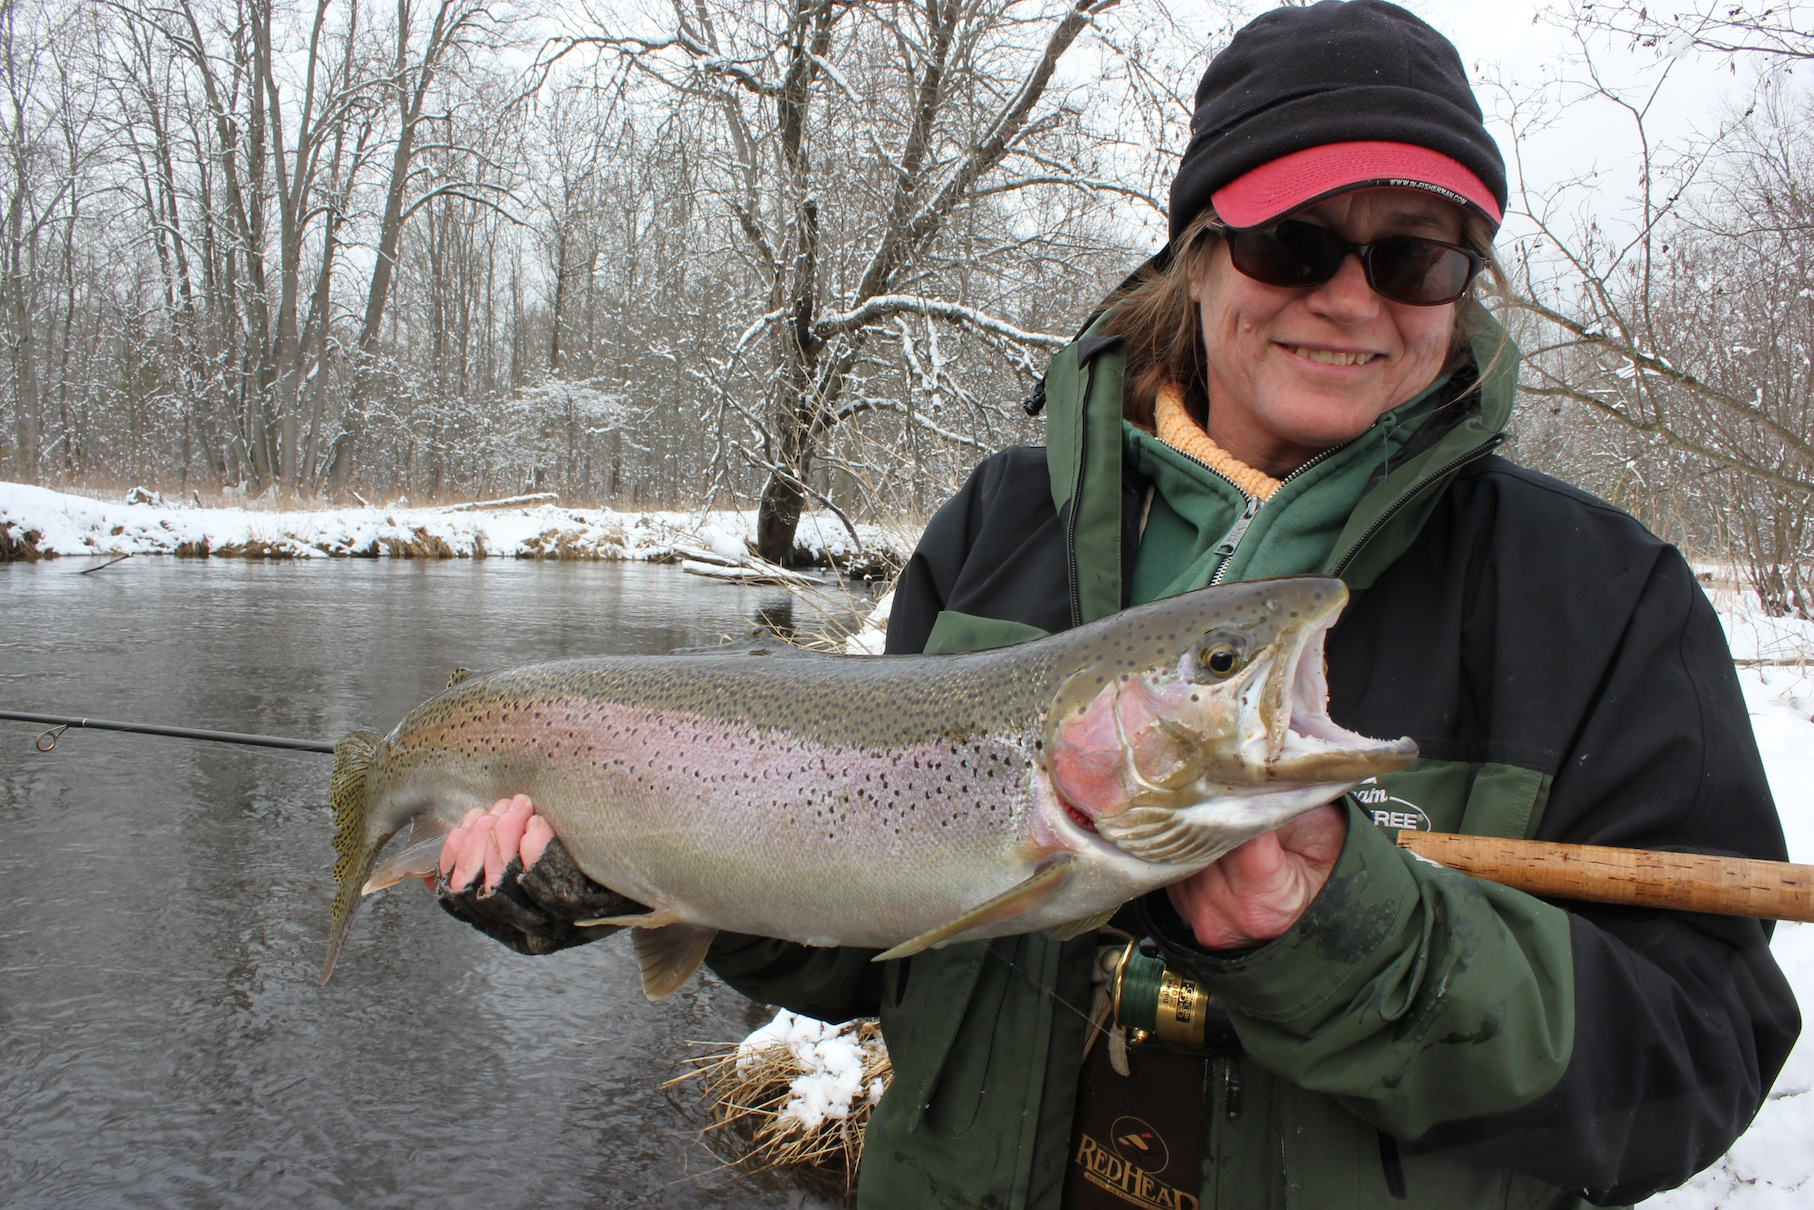 Here's Mary Savage, spiking Rick Hammer's favorite drift on Michigan's Pere Marquette River. I